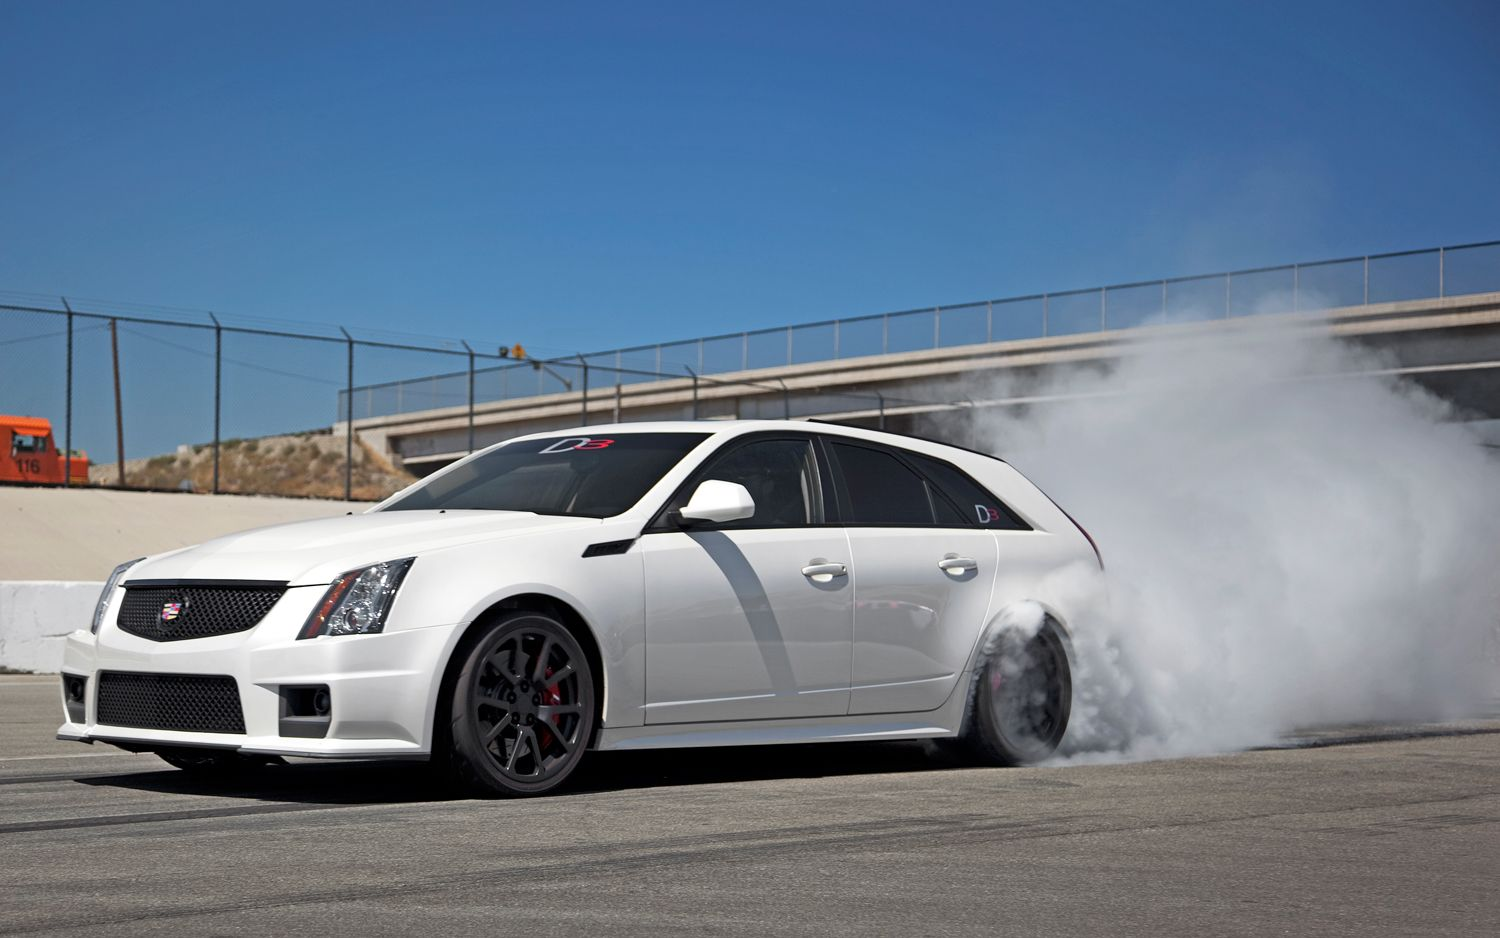 cadillac cts v wagon 2014 3 cadillac cts v wagon 2014 4 cadillac cts. Cars Review. Best American Auto & Cars Review